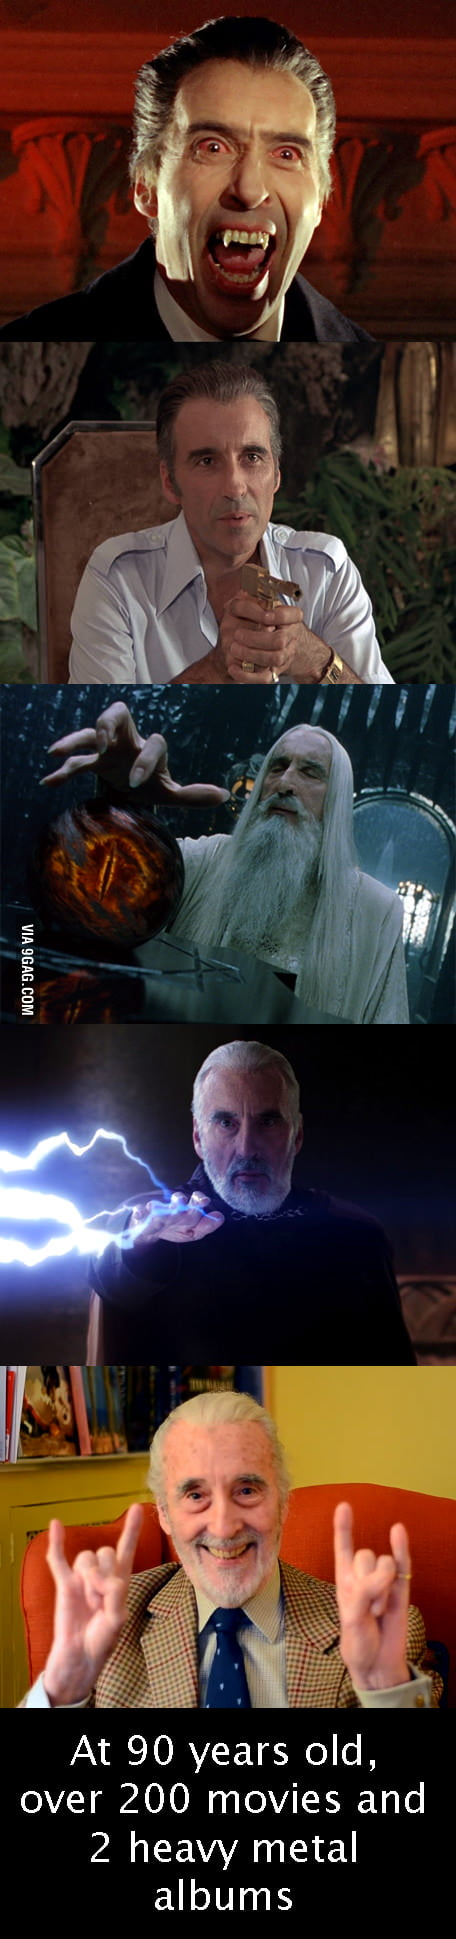 Sir Christopher Lee rocks